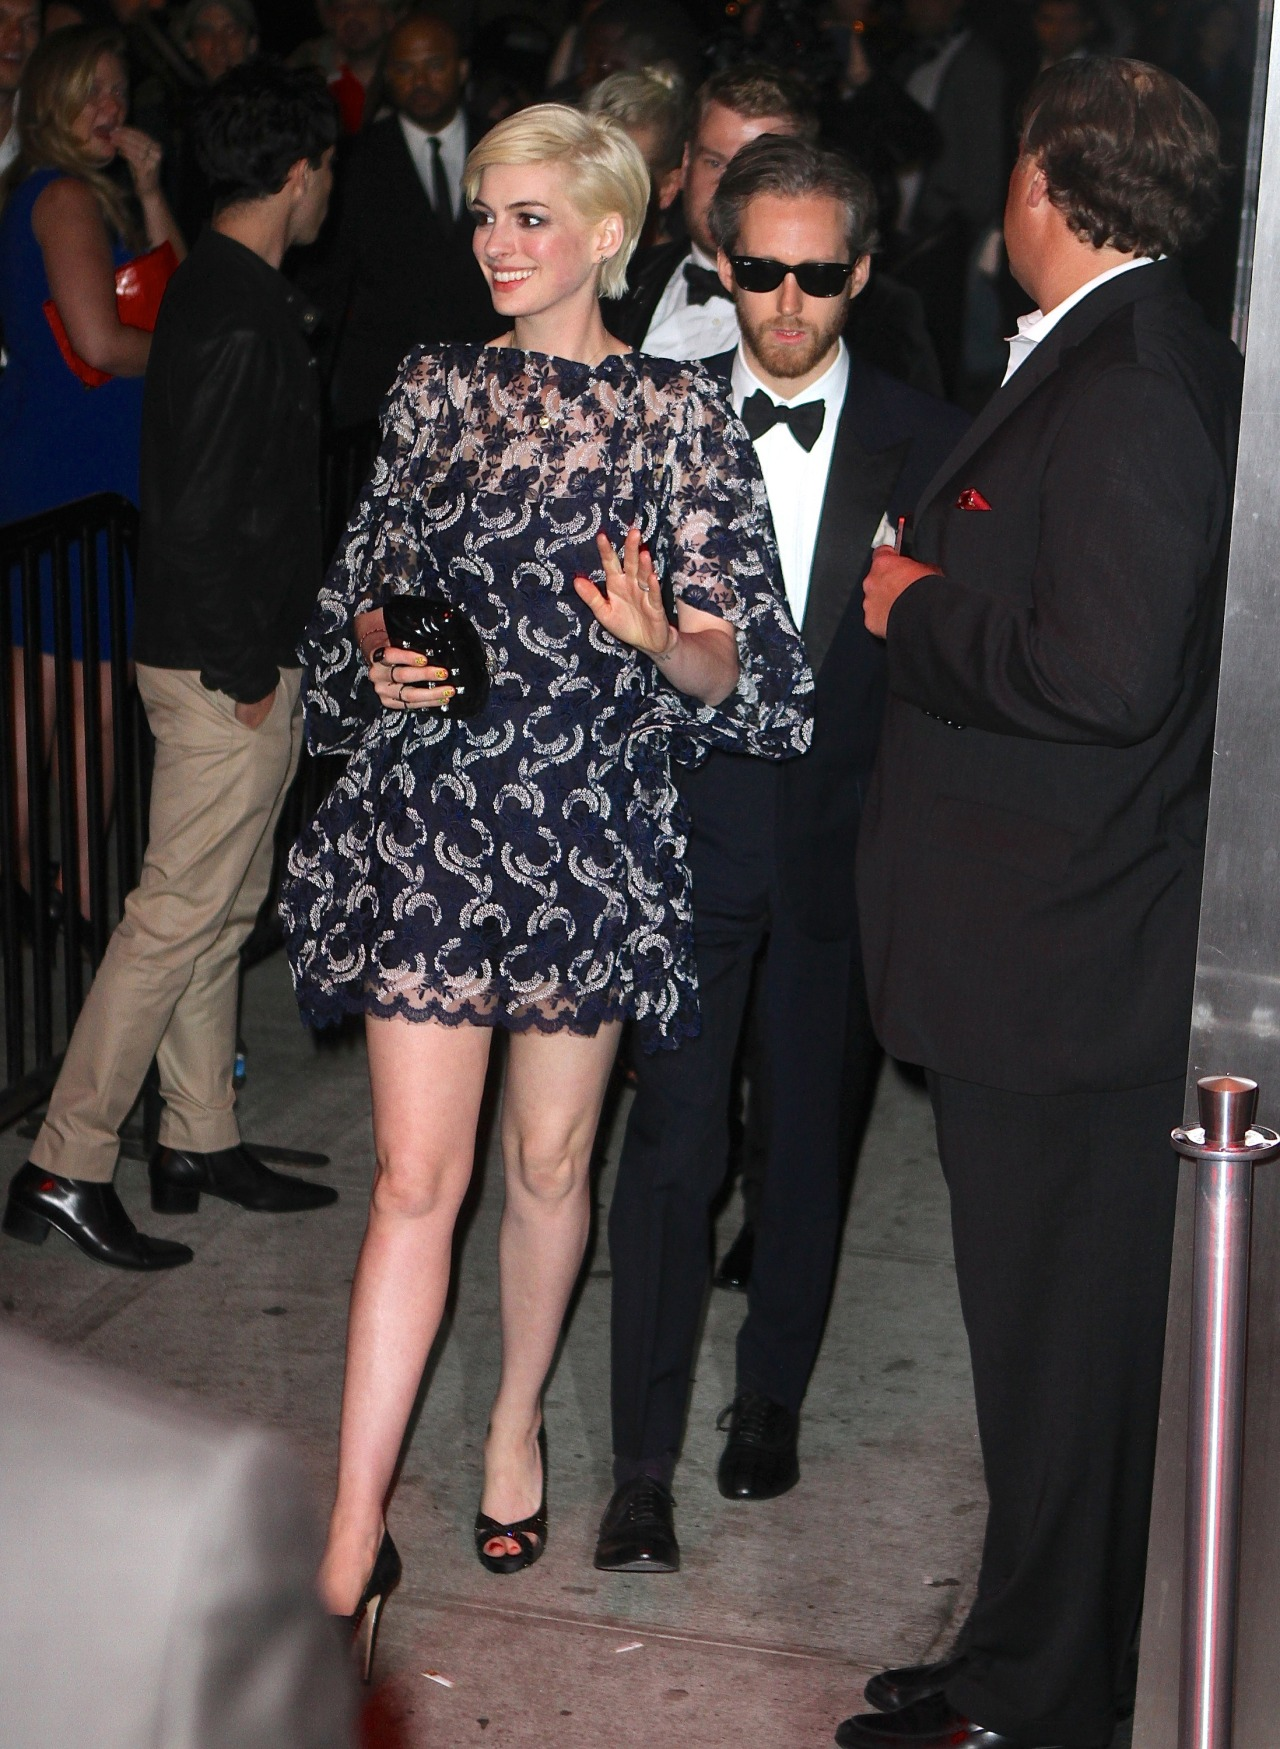 Anne Hathaway going to the Met Gala After Party at the Standard in NYC, May 6th